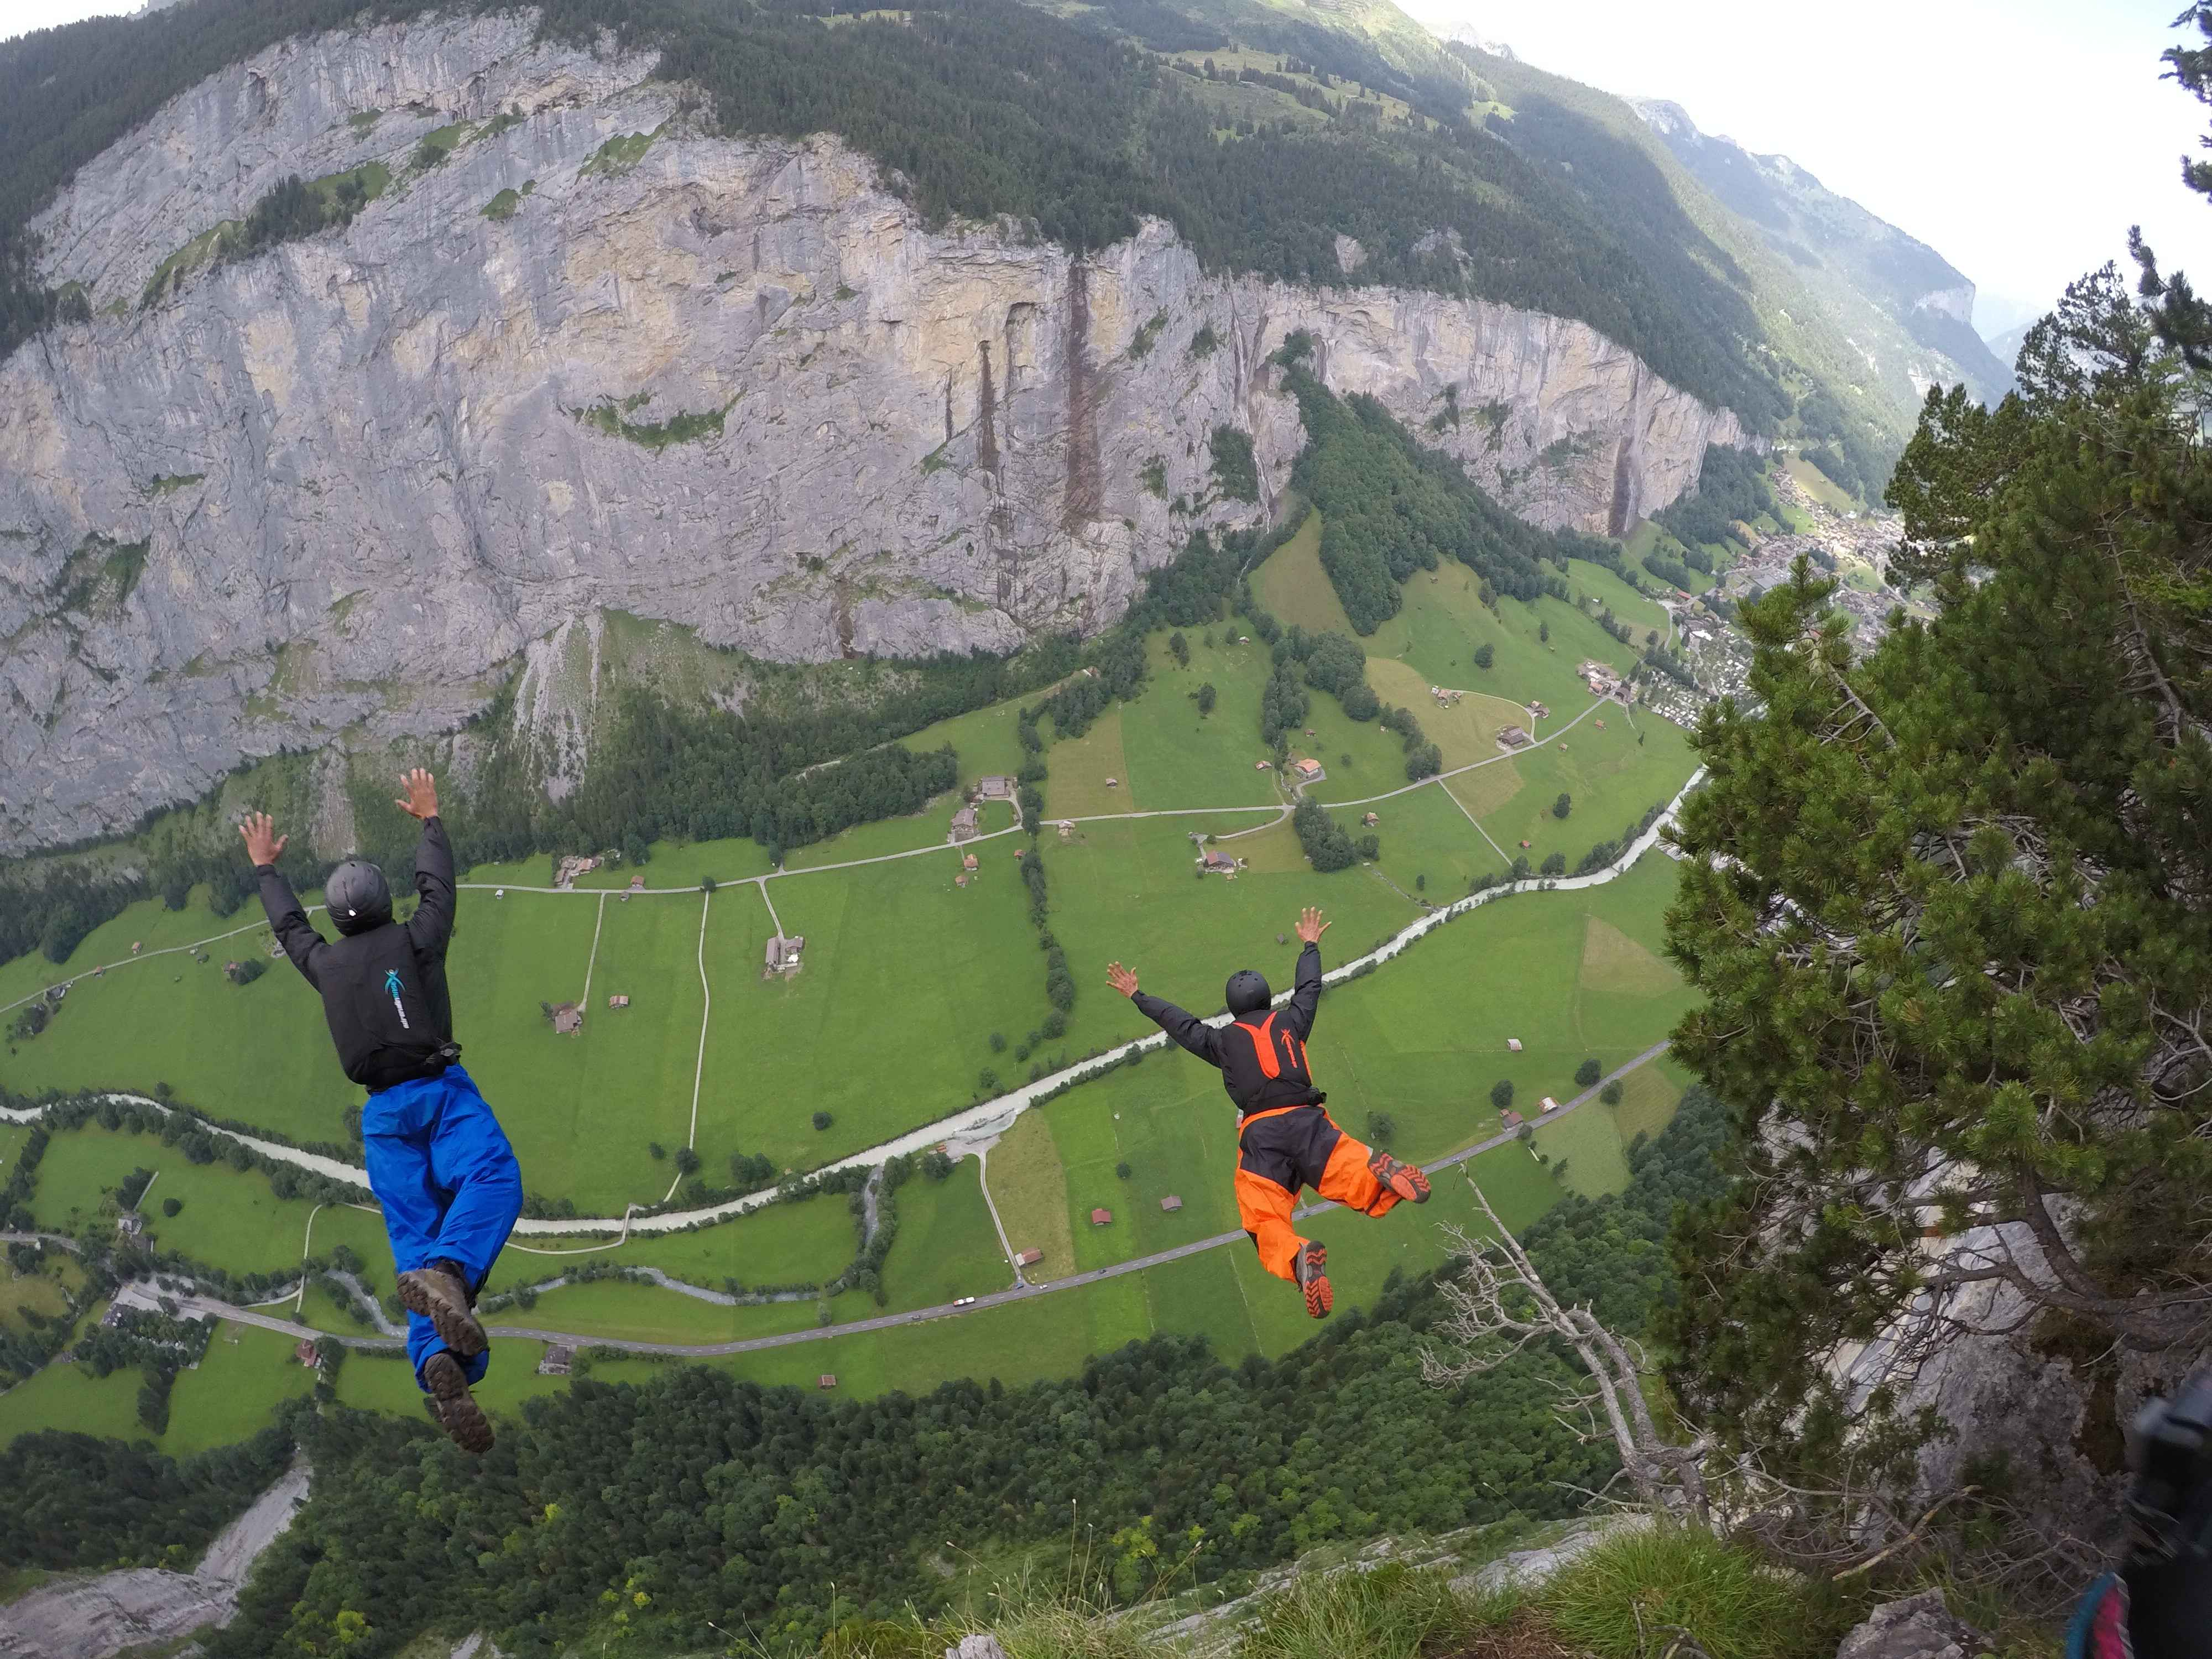 Lauterbrunnen is a BASE paradise but technical and should be approached with respect and caution